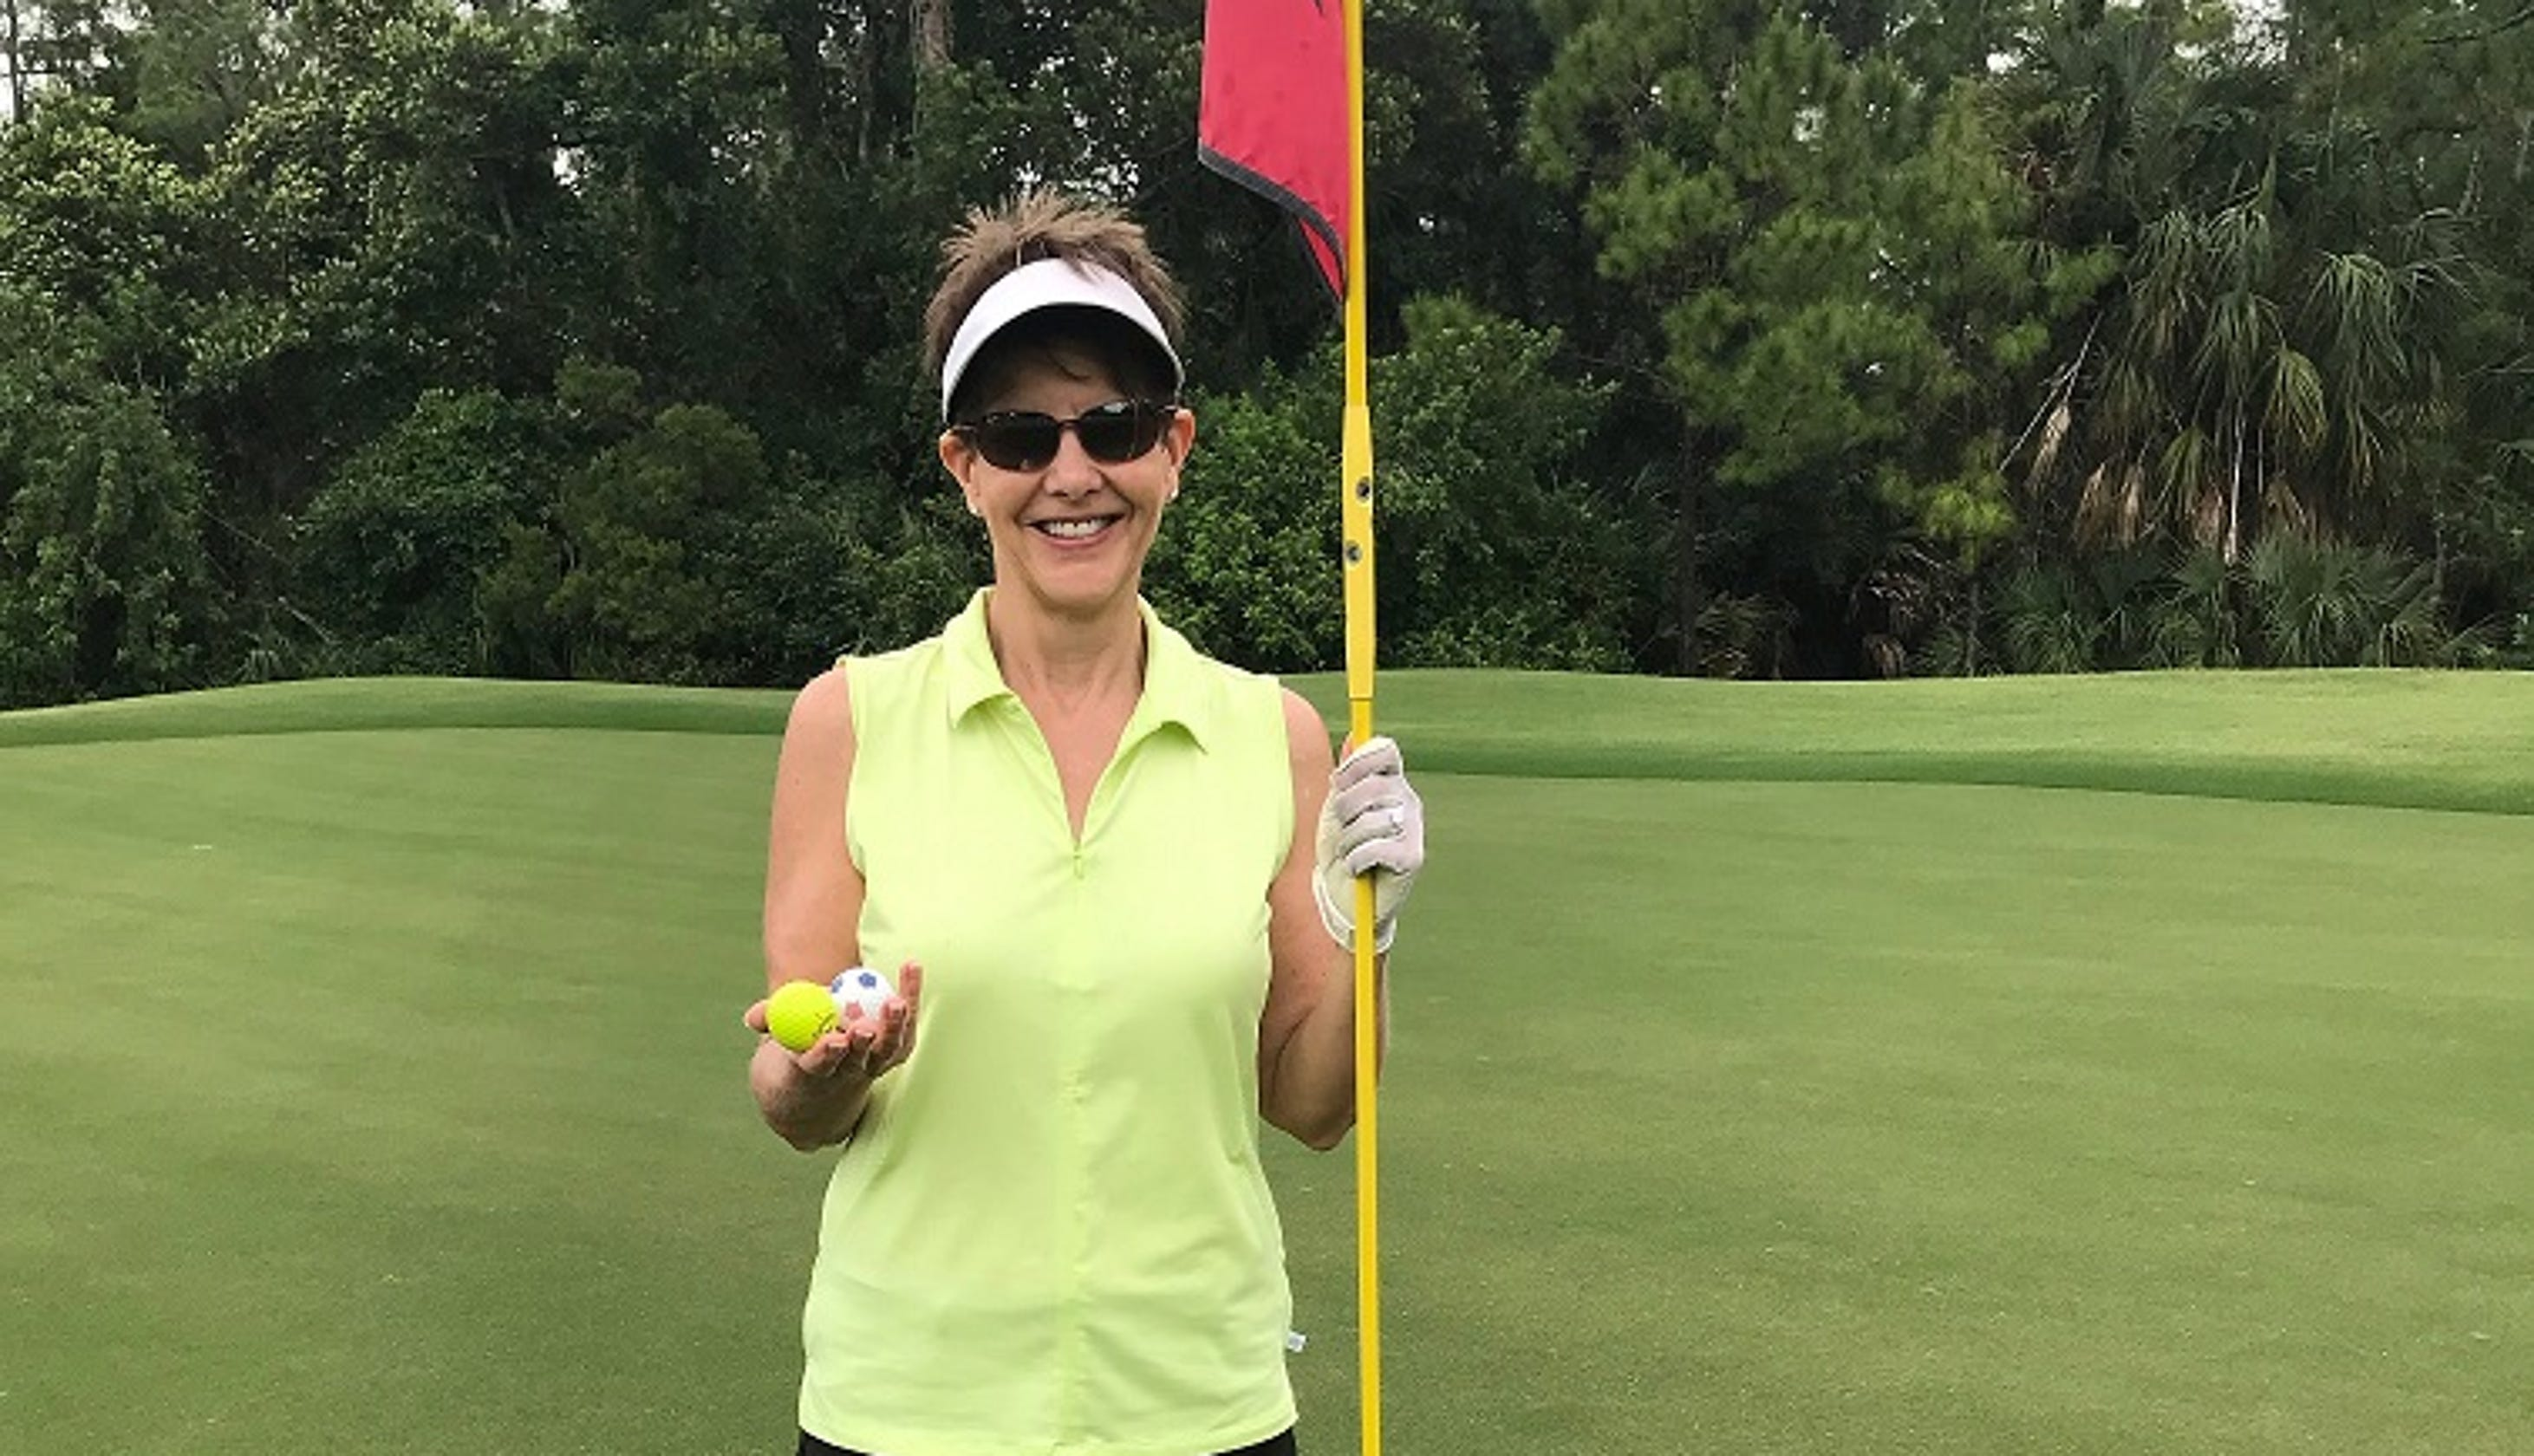 Naples Woman Makes Two Aces In Four-hole Span